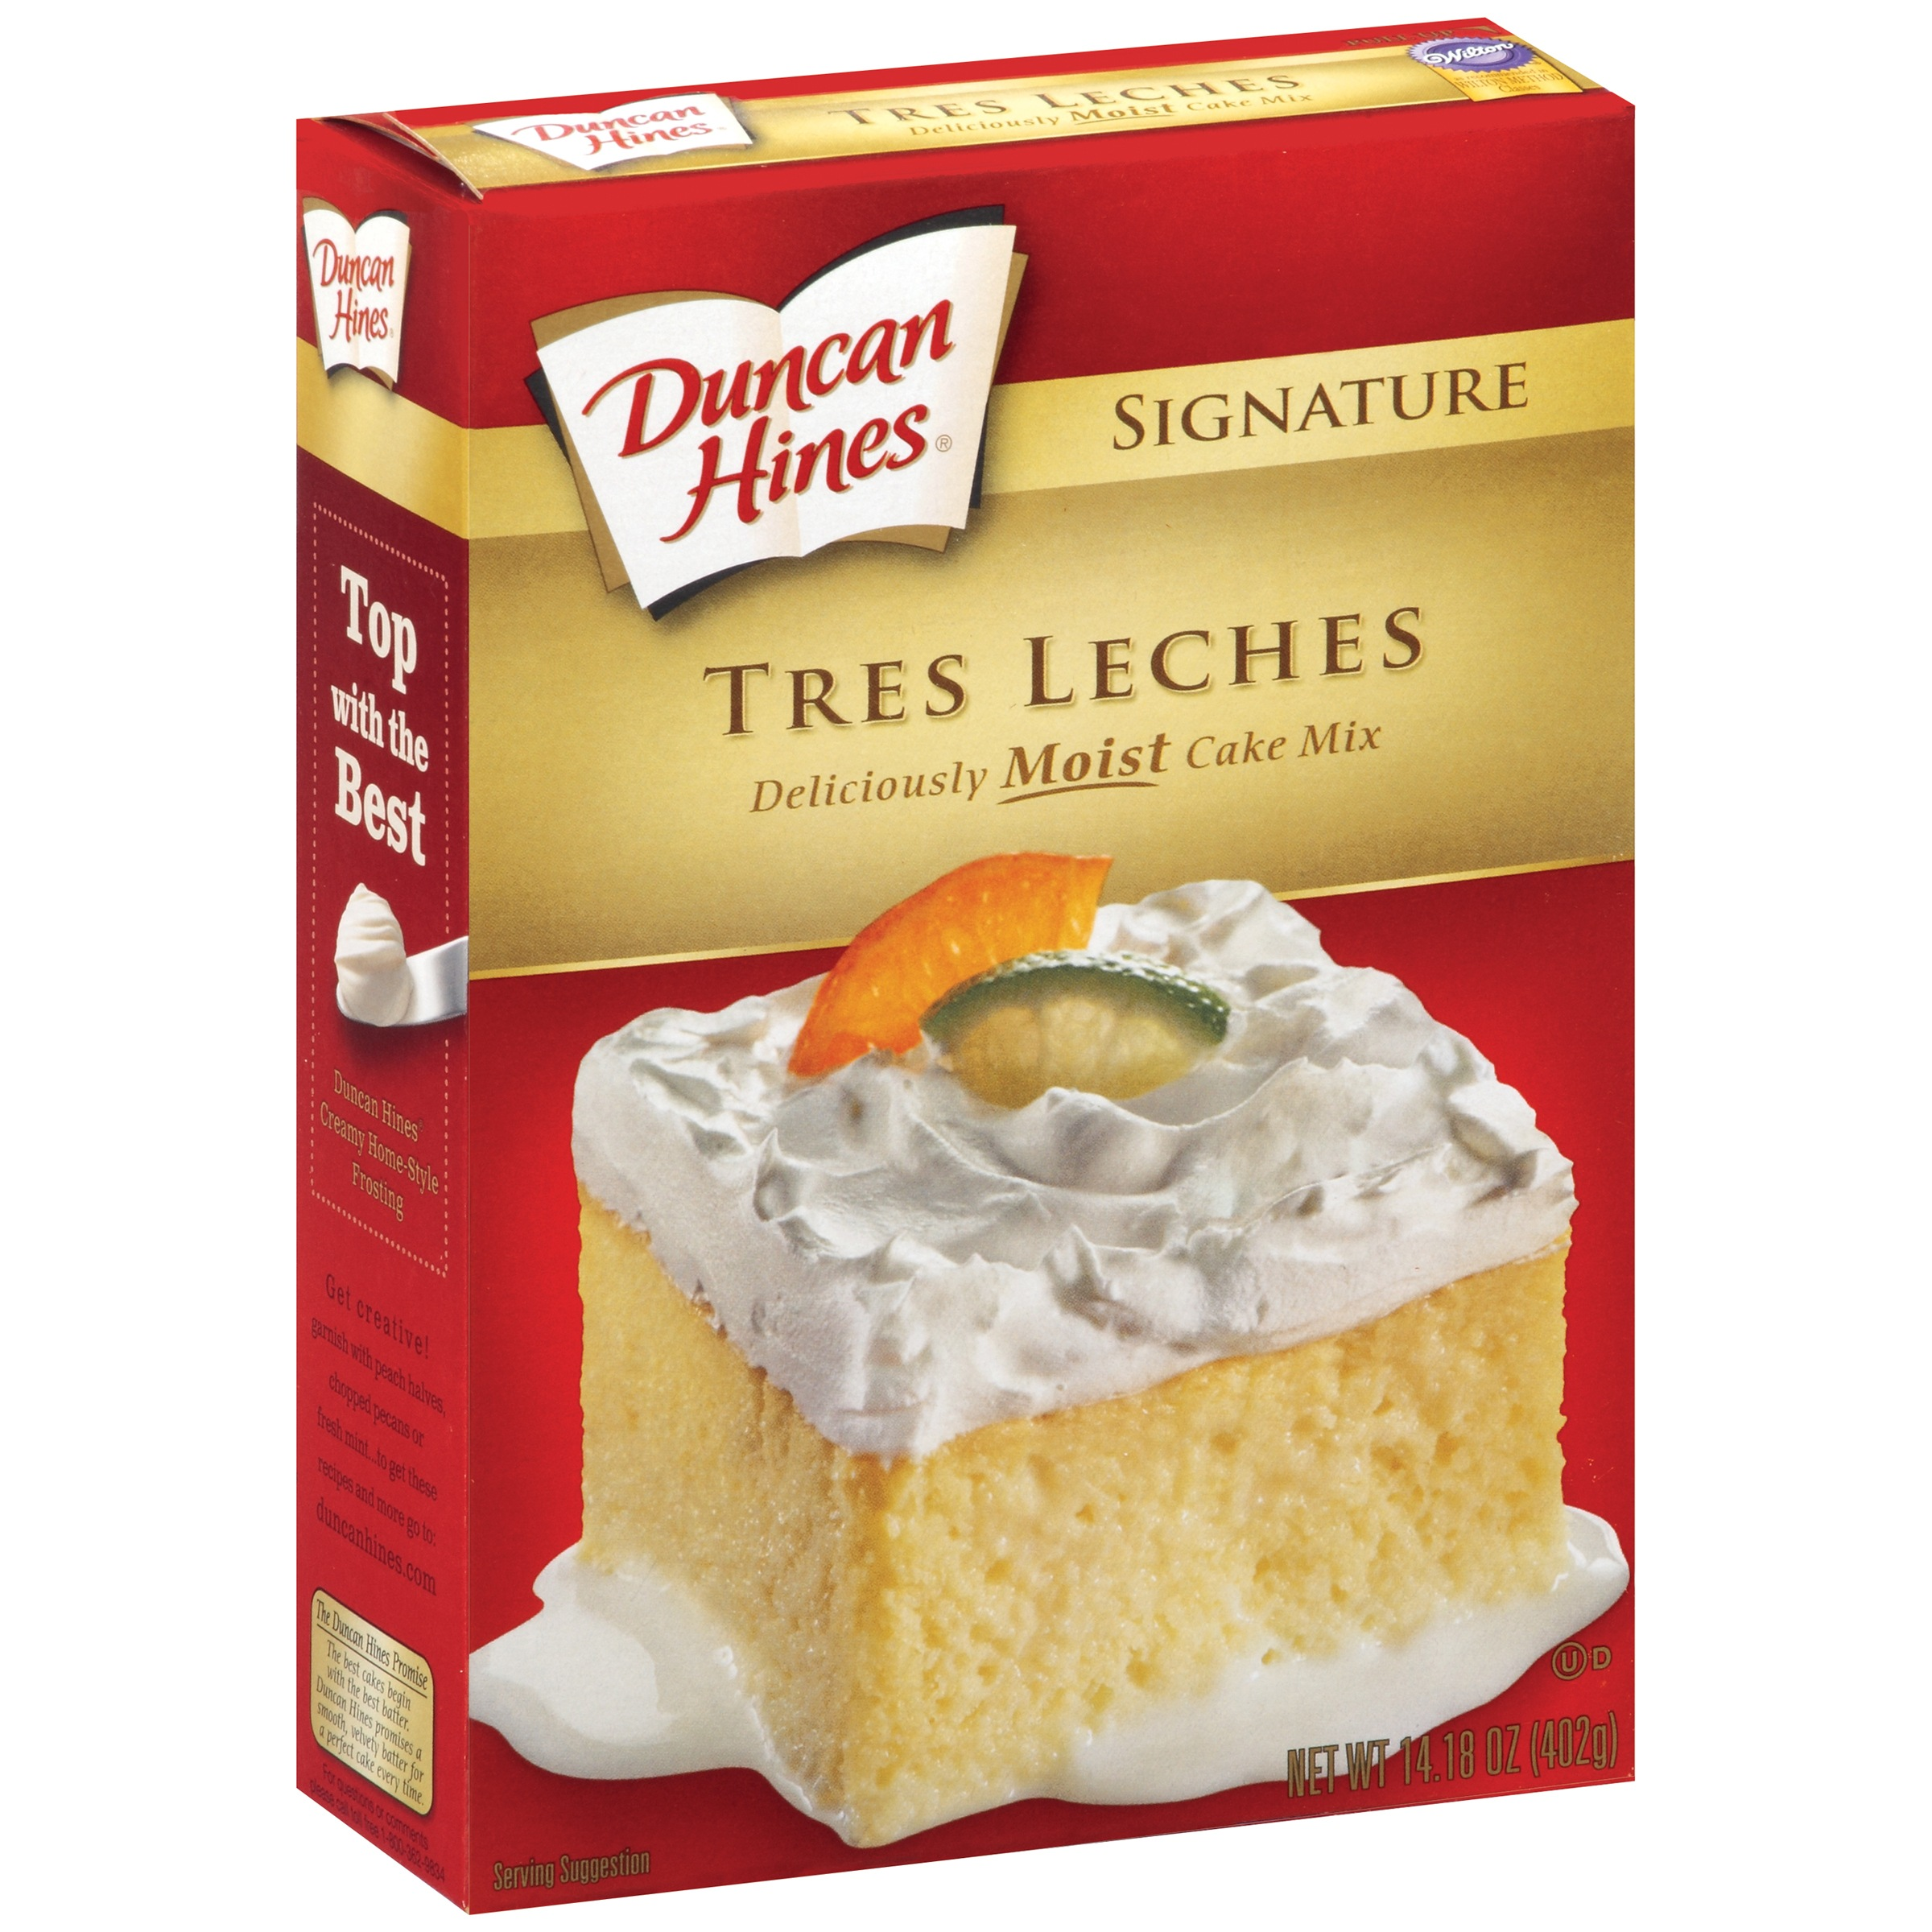 (2 pack) Duncan Hines Signature Tres Leches Cake Mix, 14.18 oz